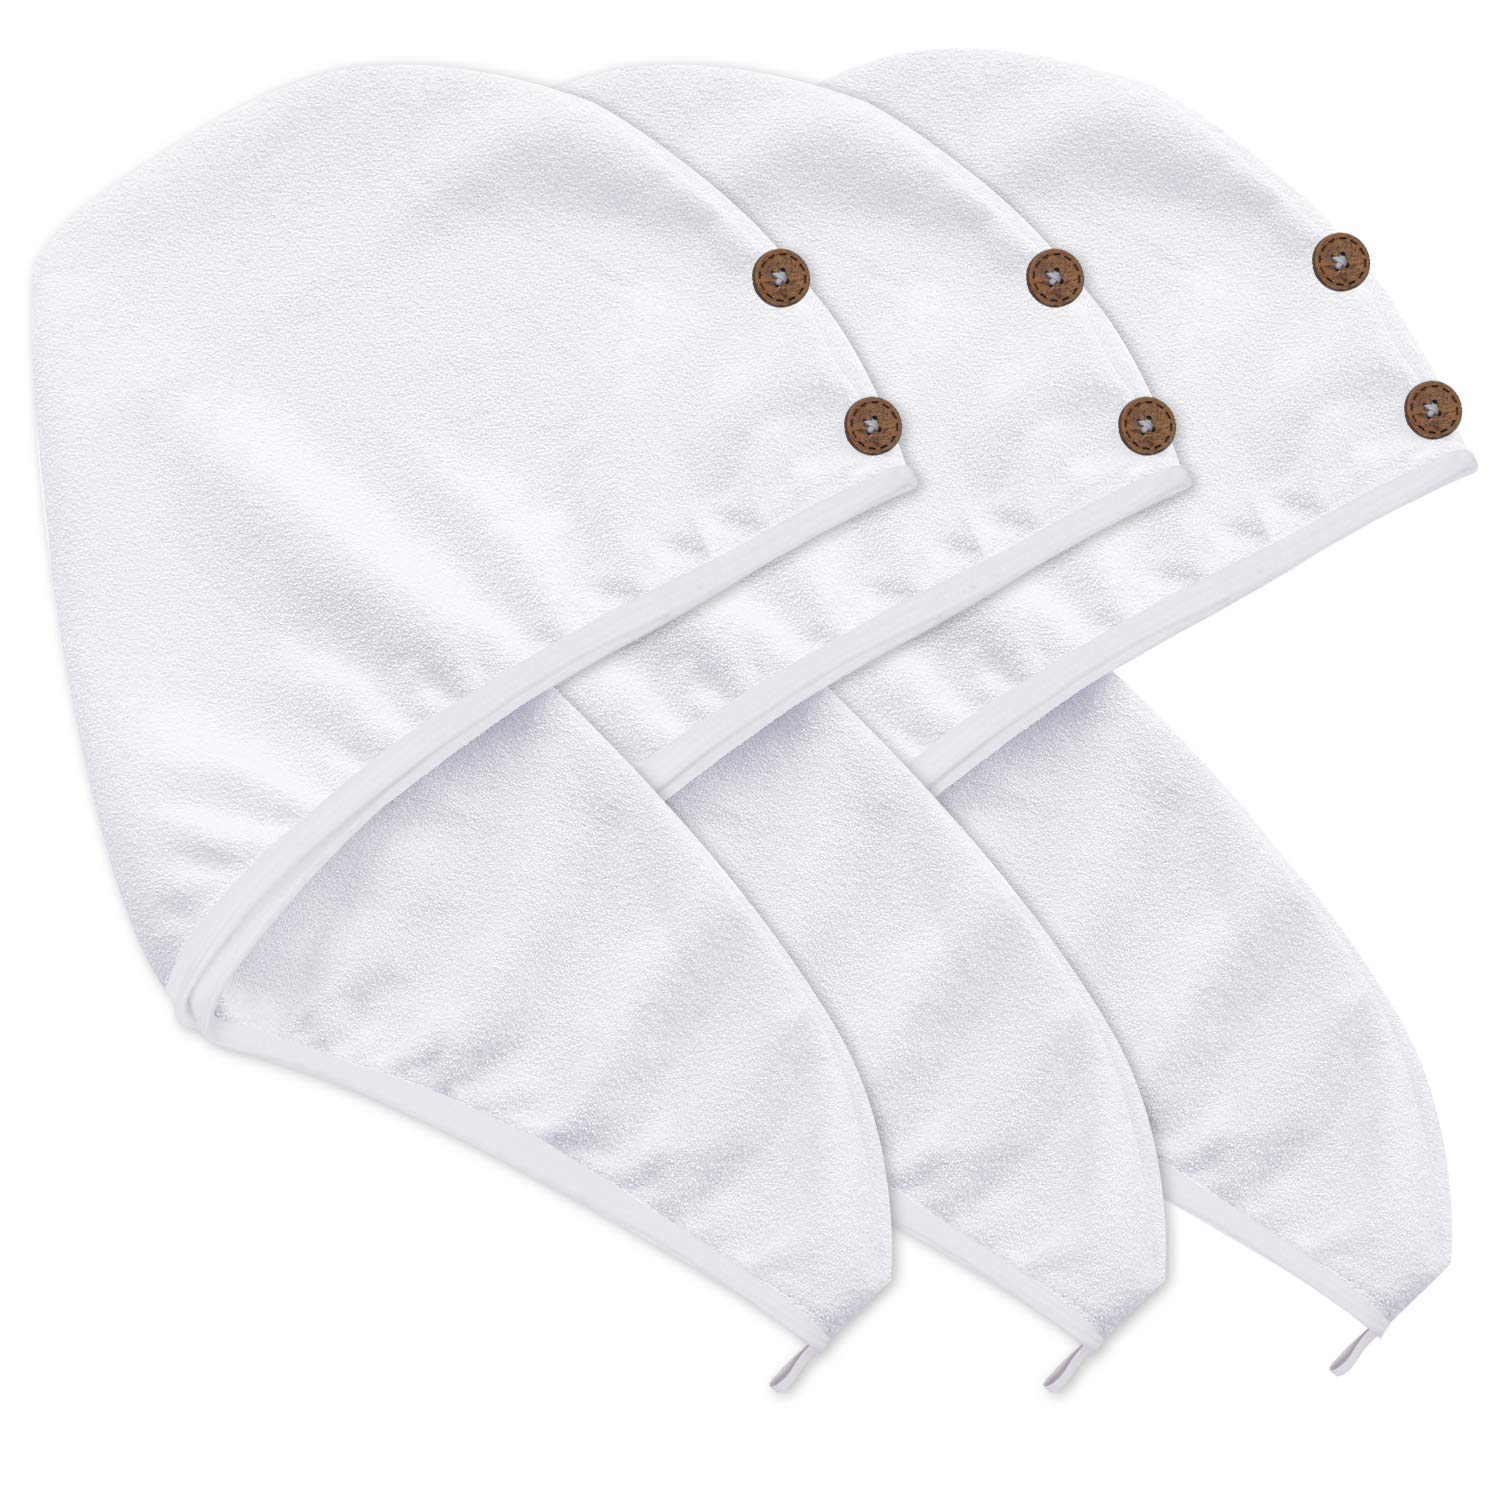 KinHwa Microfiber Hair Towel Wraps for Women Ultra Absorbent Hair Drying Turban with 2 Buttons Fast Drying Bath Hair Drying Towel 10Inch x 23.5Inch 3 Pack White